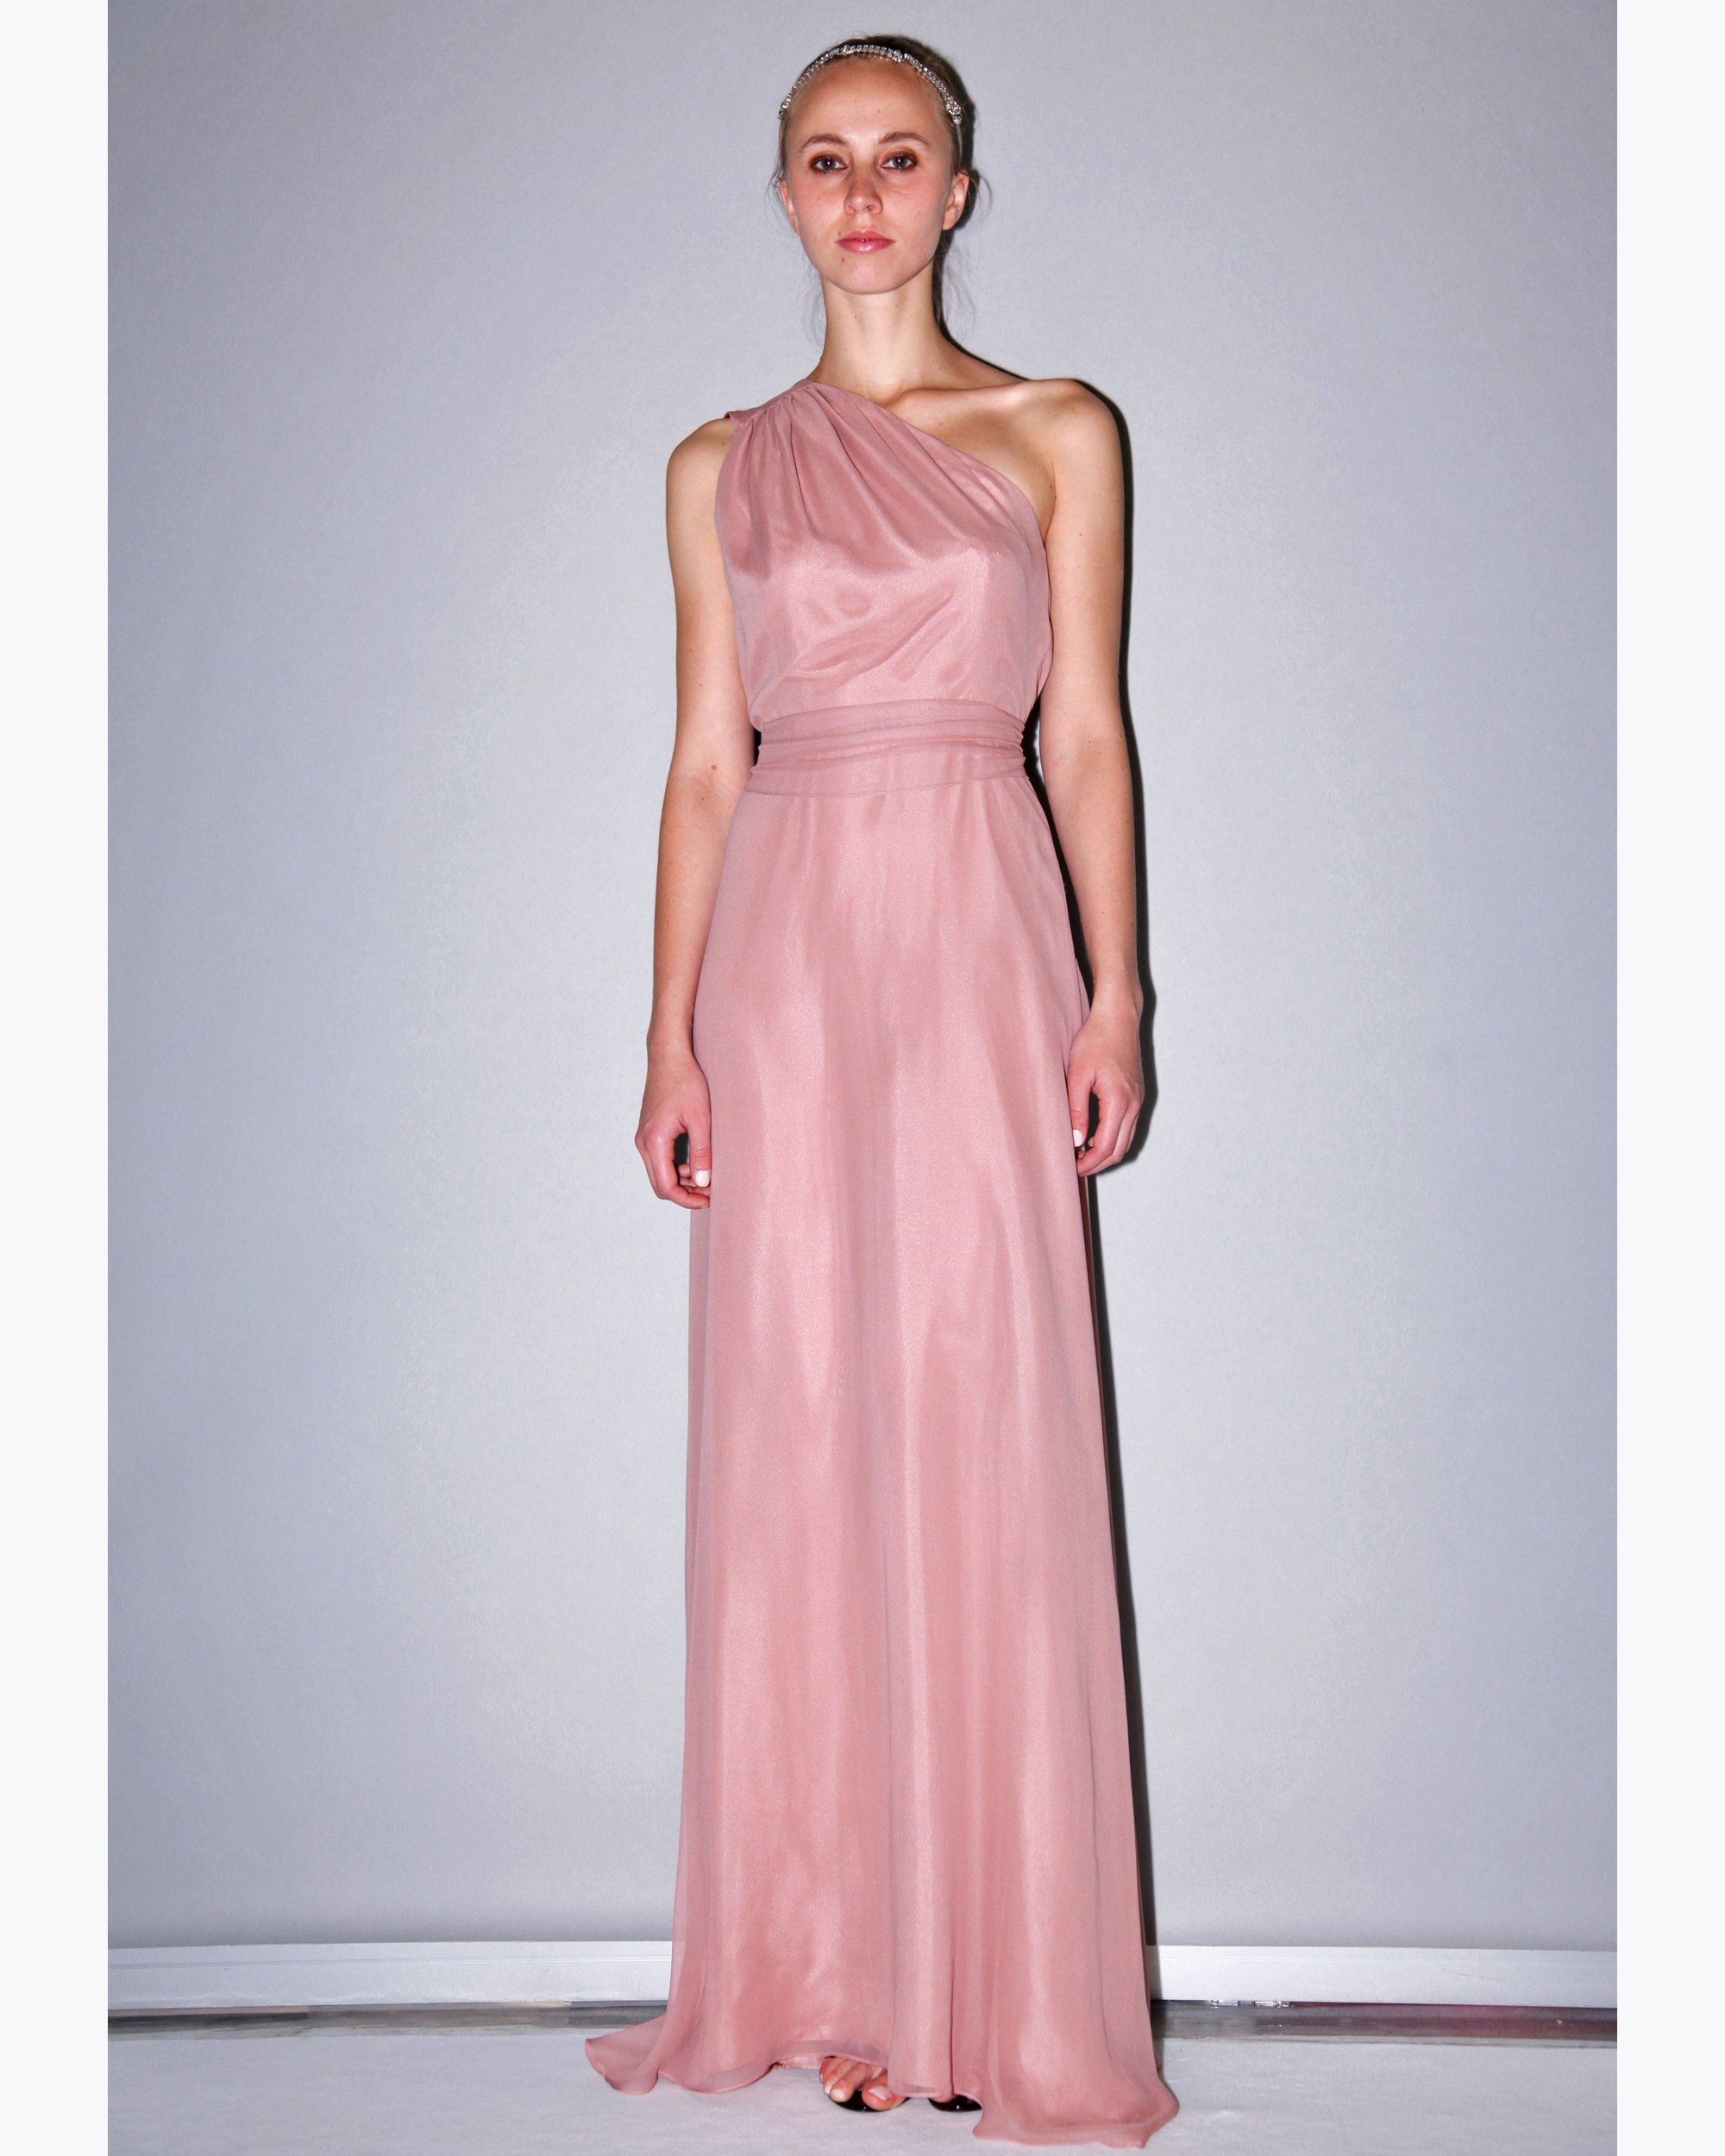 One-Shoulder Pink Bridesmaid Dress